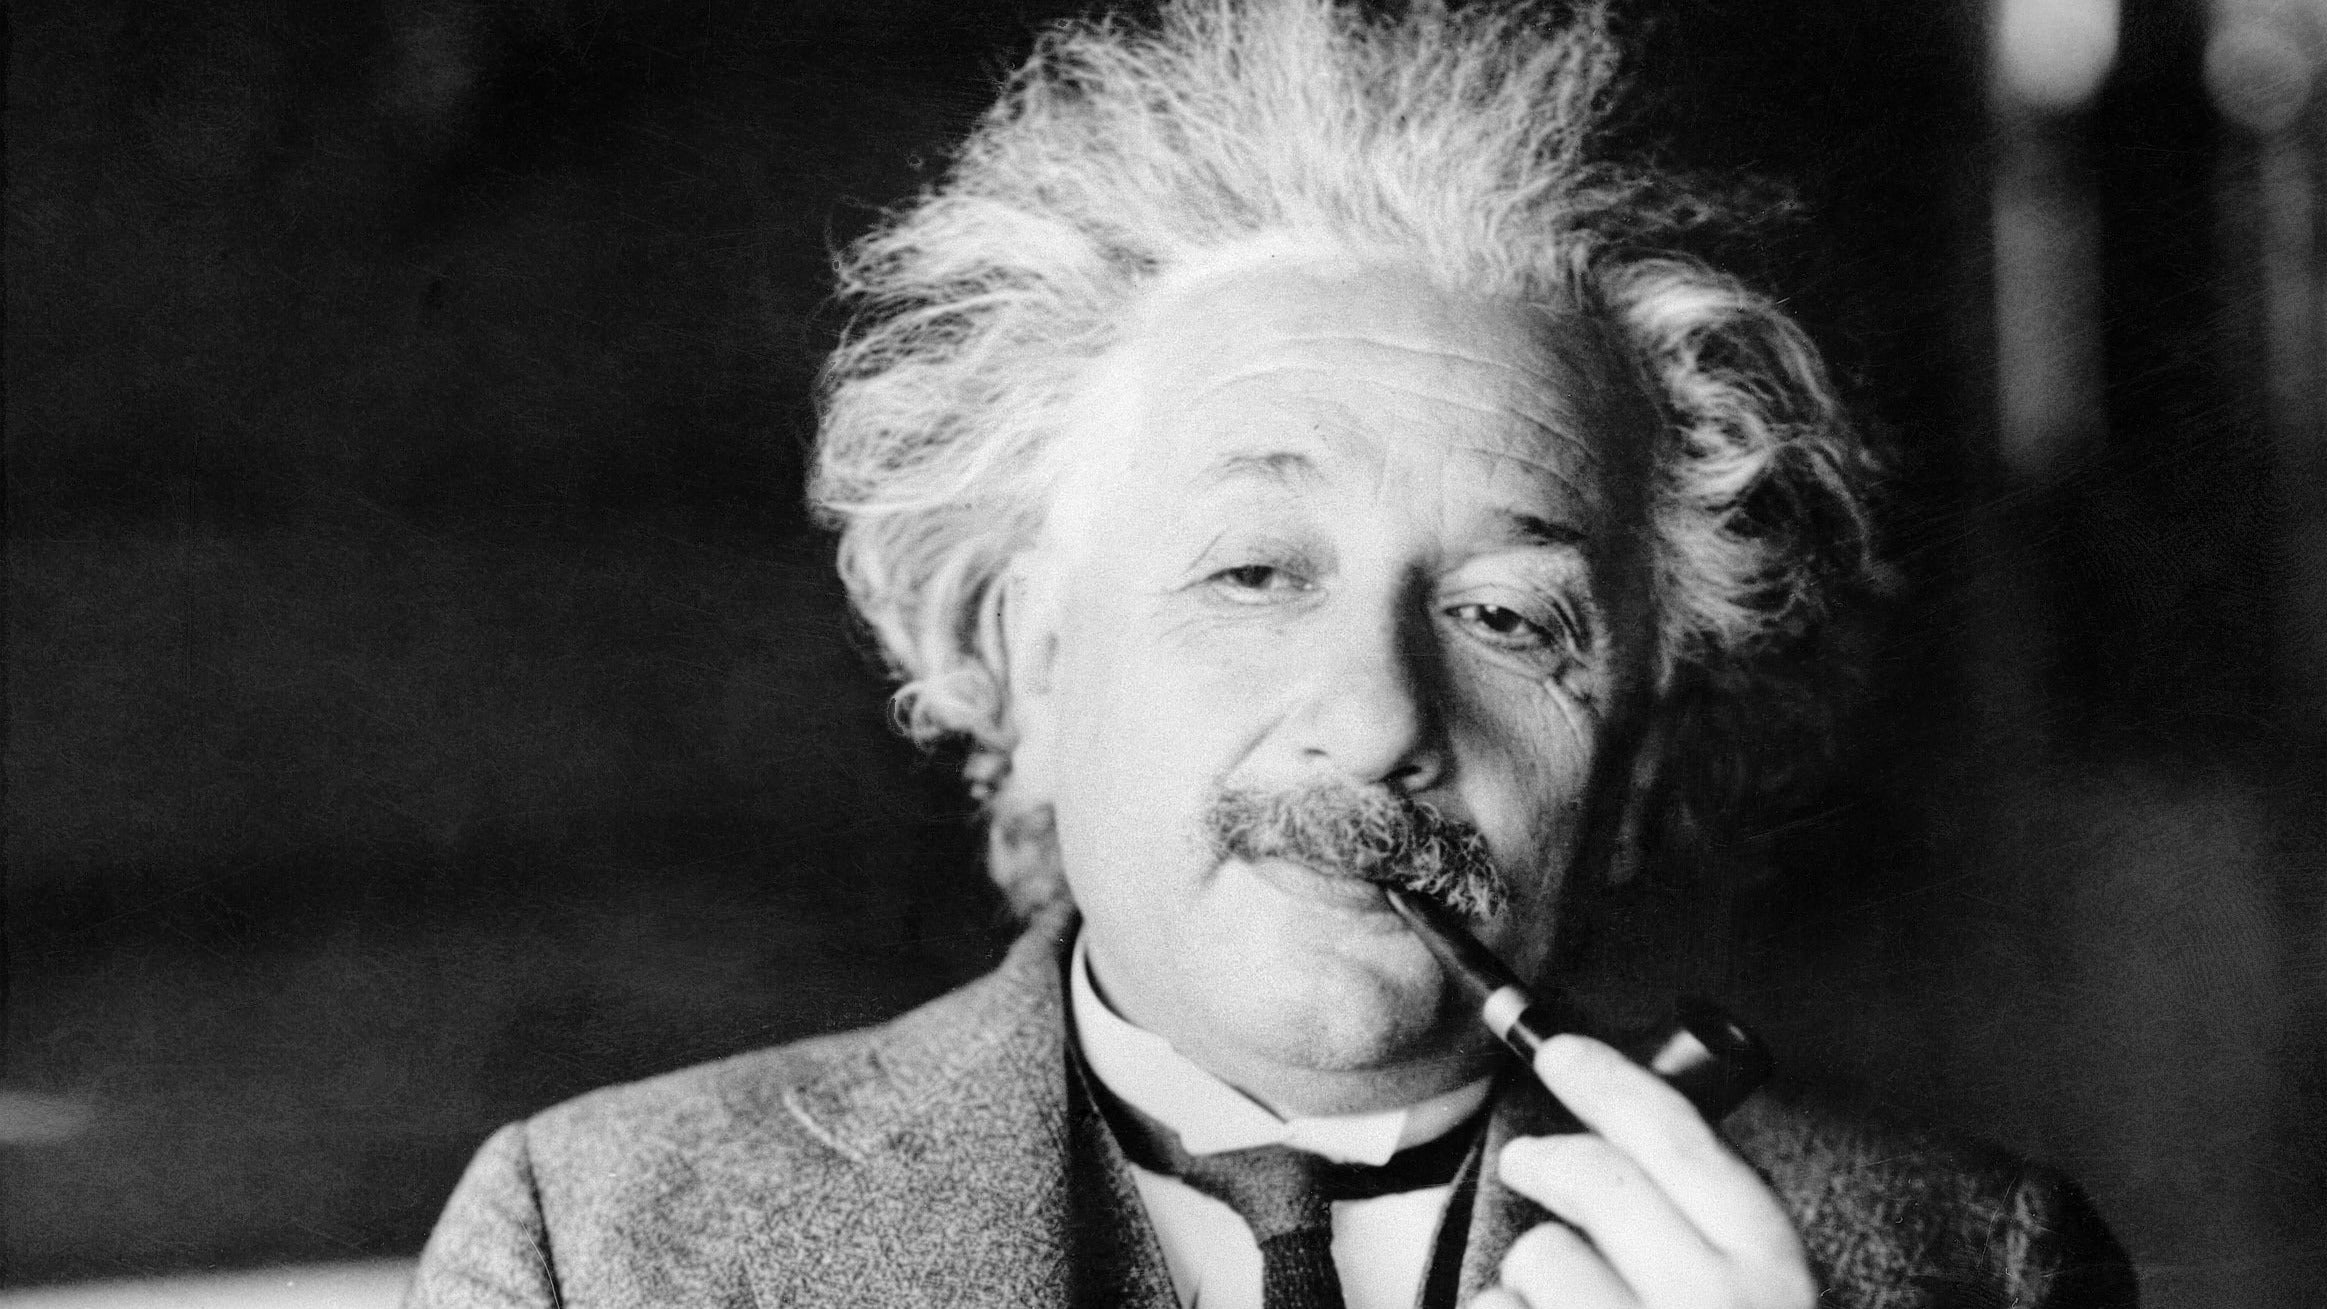 Albert Einstein Proven Right On His Life Advice Being Worth More Than A Cash Tip